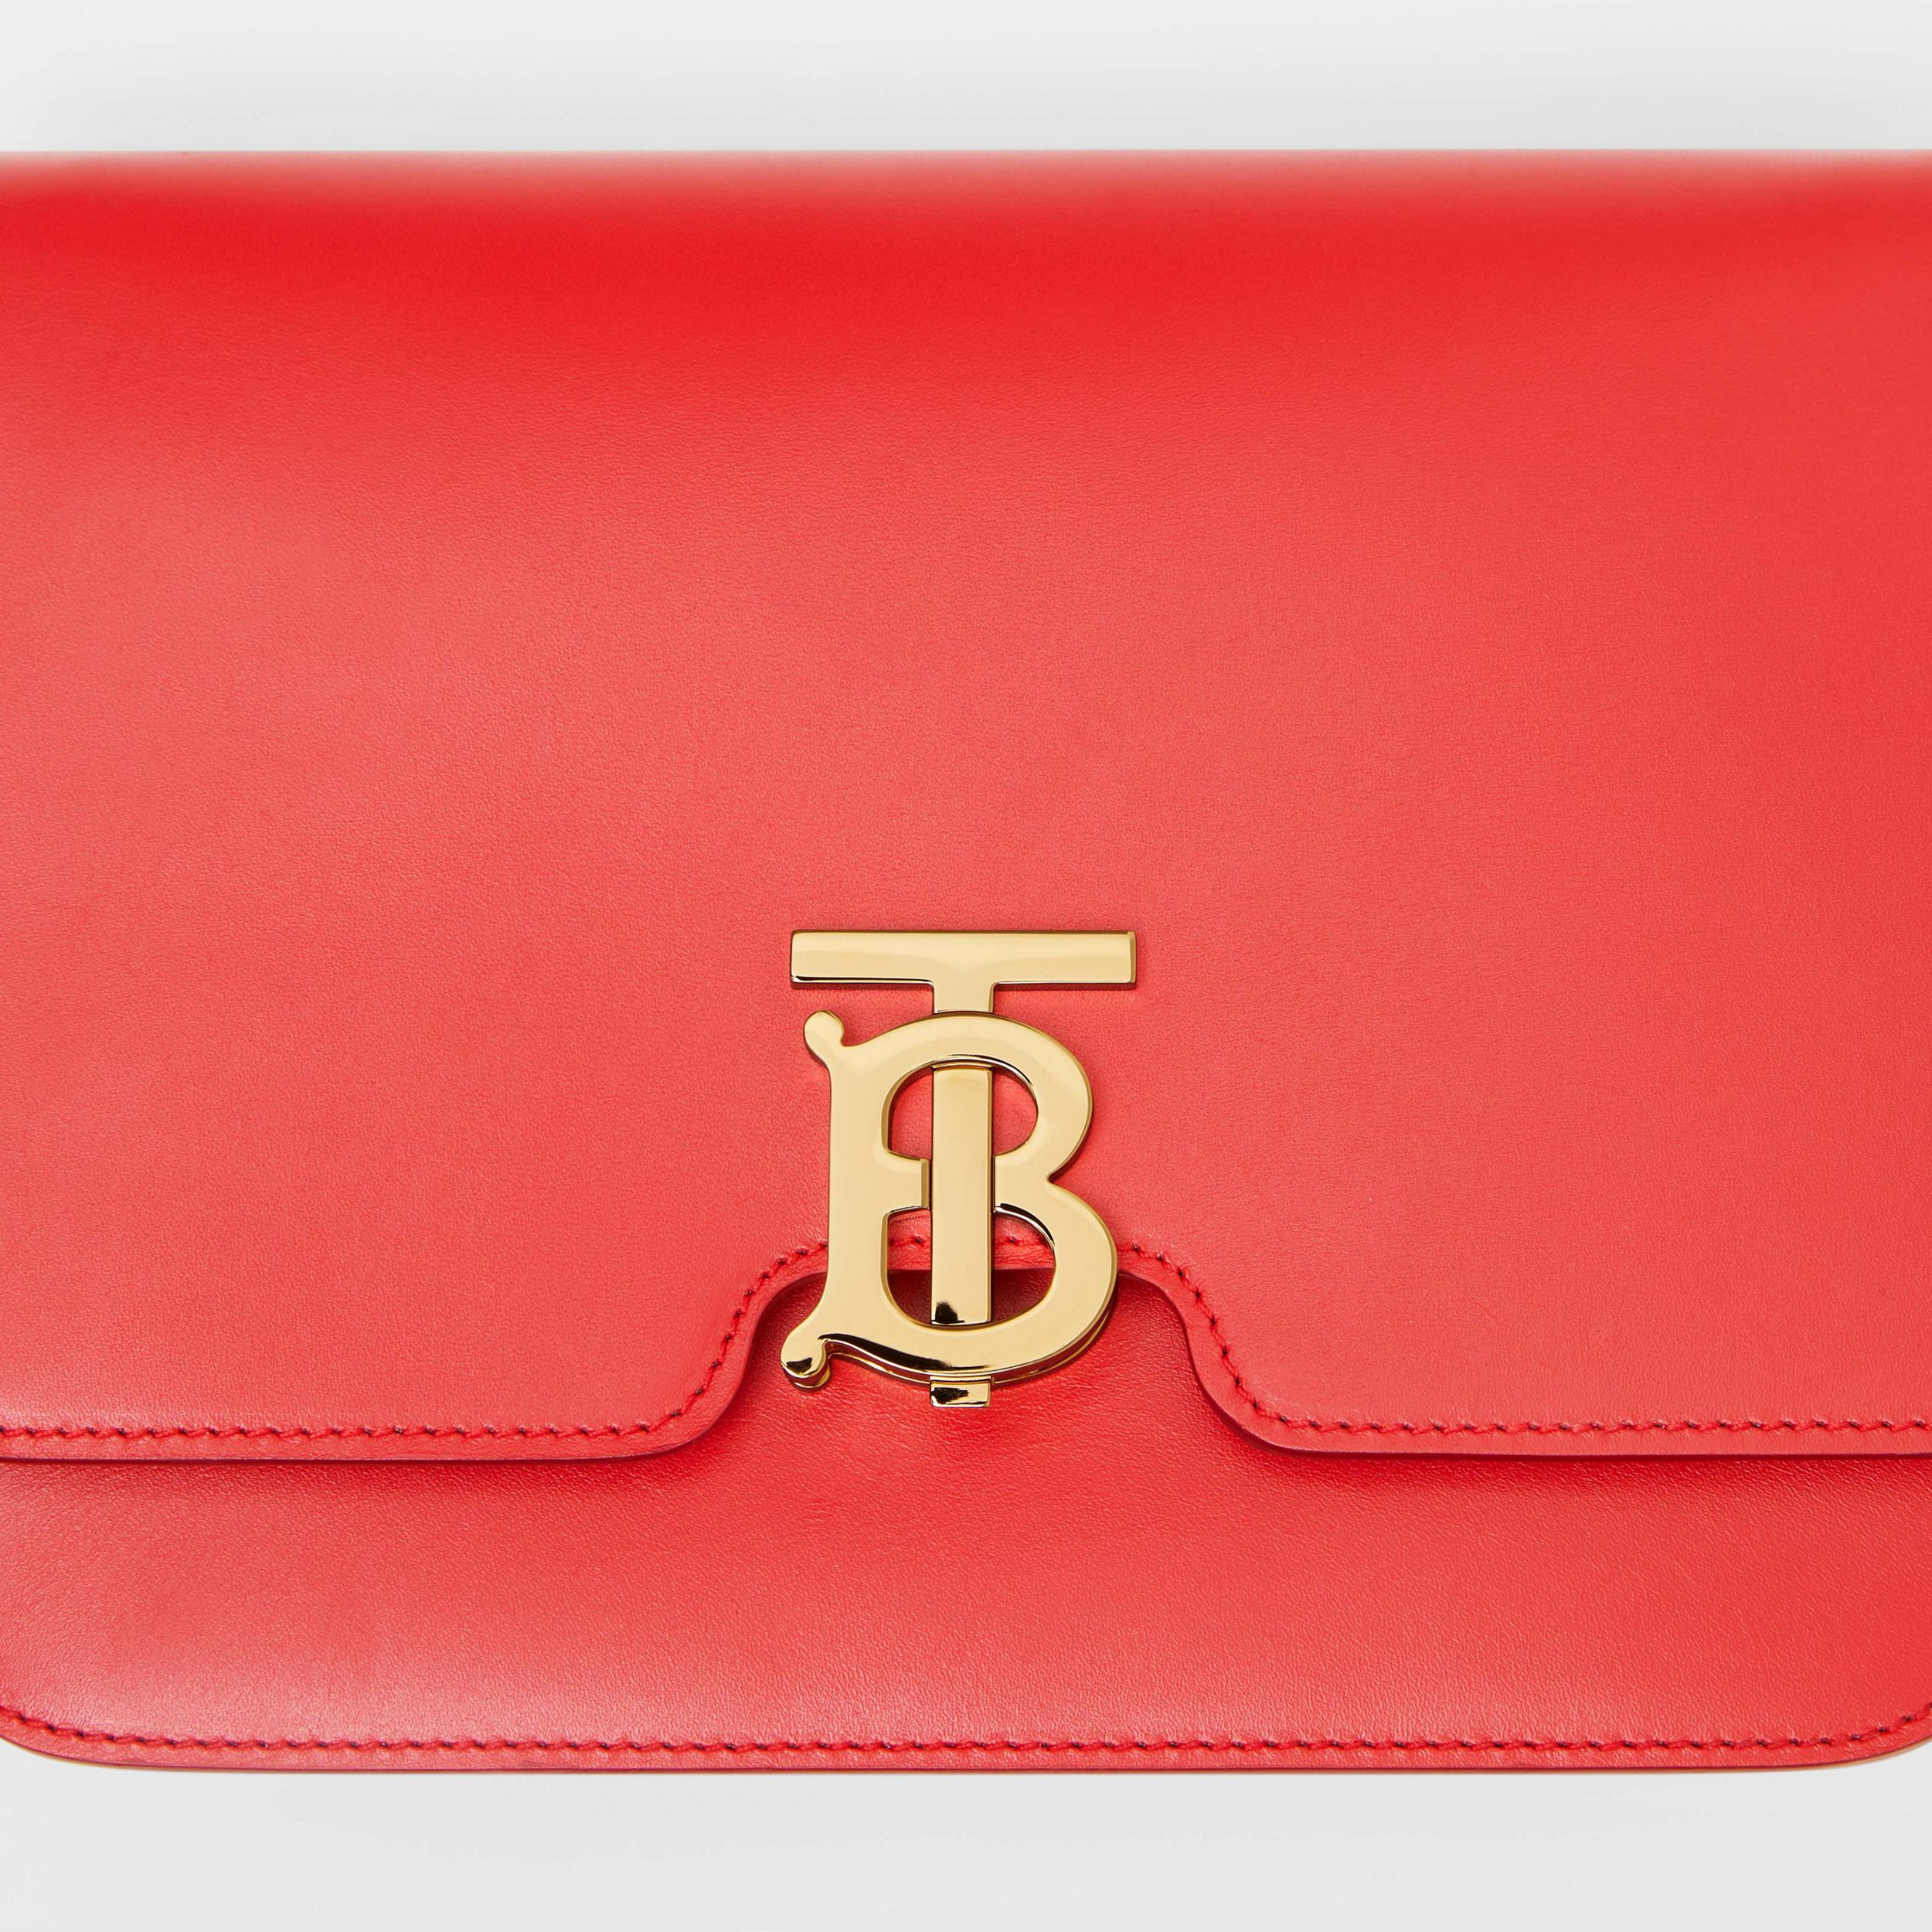 Medium Leather TB Bag in Bright Red - Women | Burberry - 2